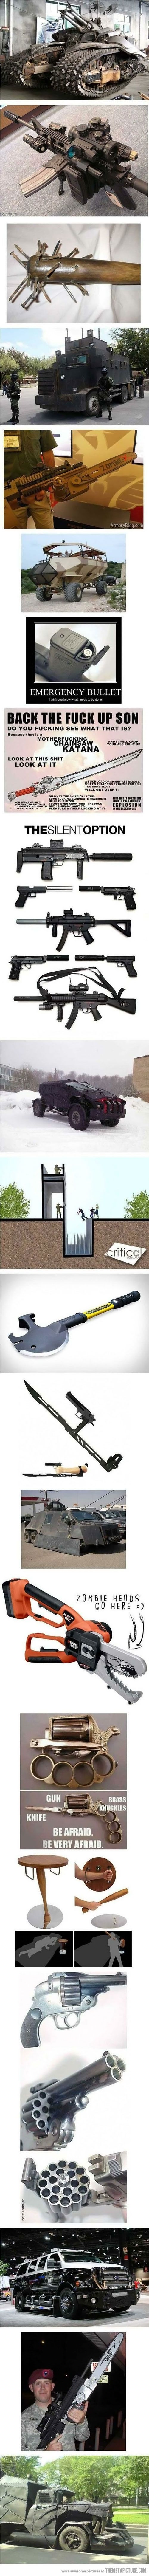 Everything you'll need for a zombie apocalypse…  (PS...sorry it swore for the katana)